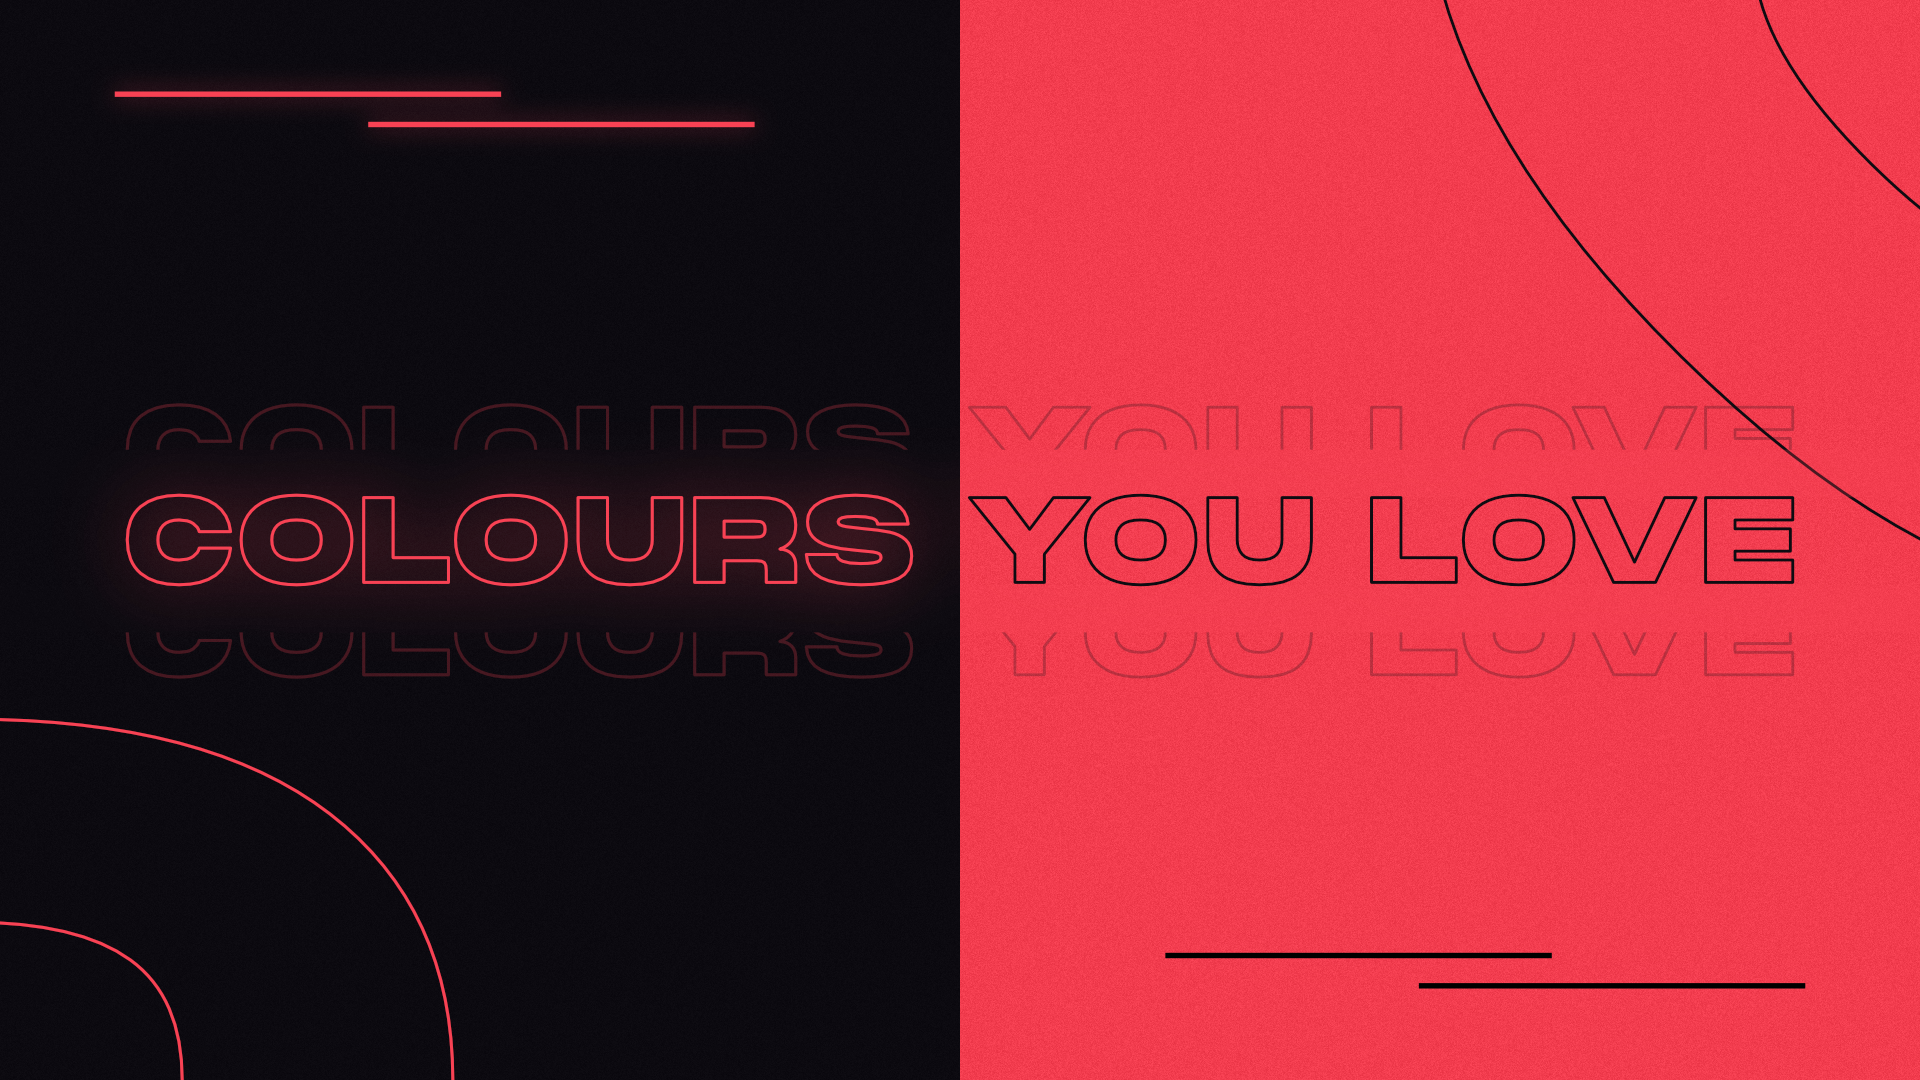 coloursyoulove